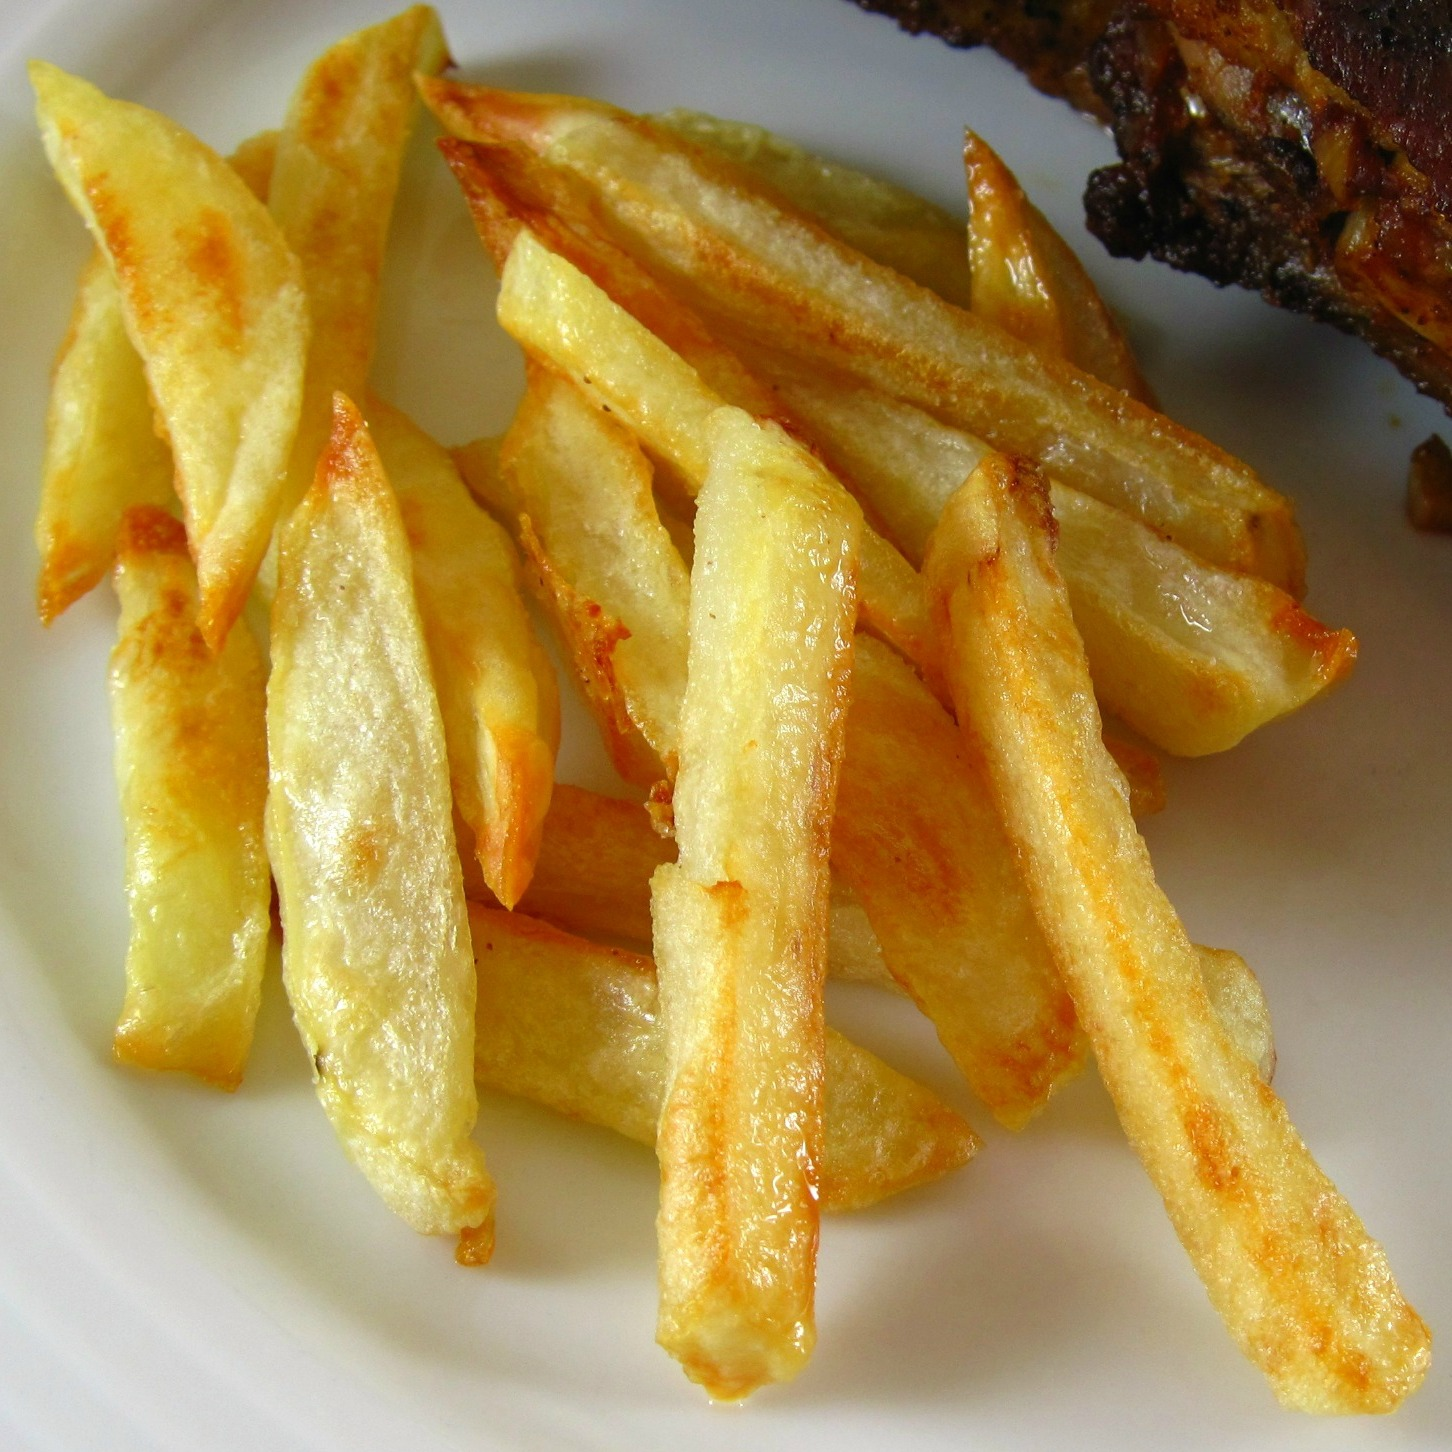 "... Breakfast Programs ½"" CRINKLE CUT OVEN FRIES ZERO TRANS FAT"